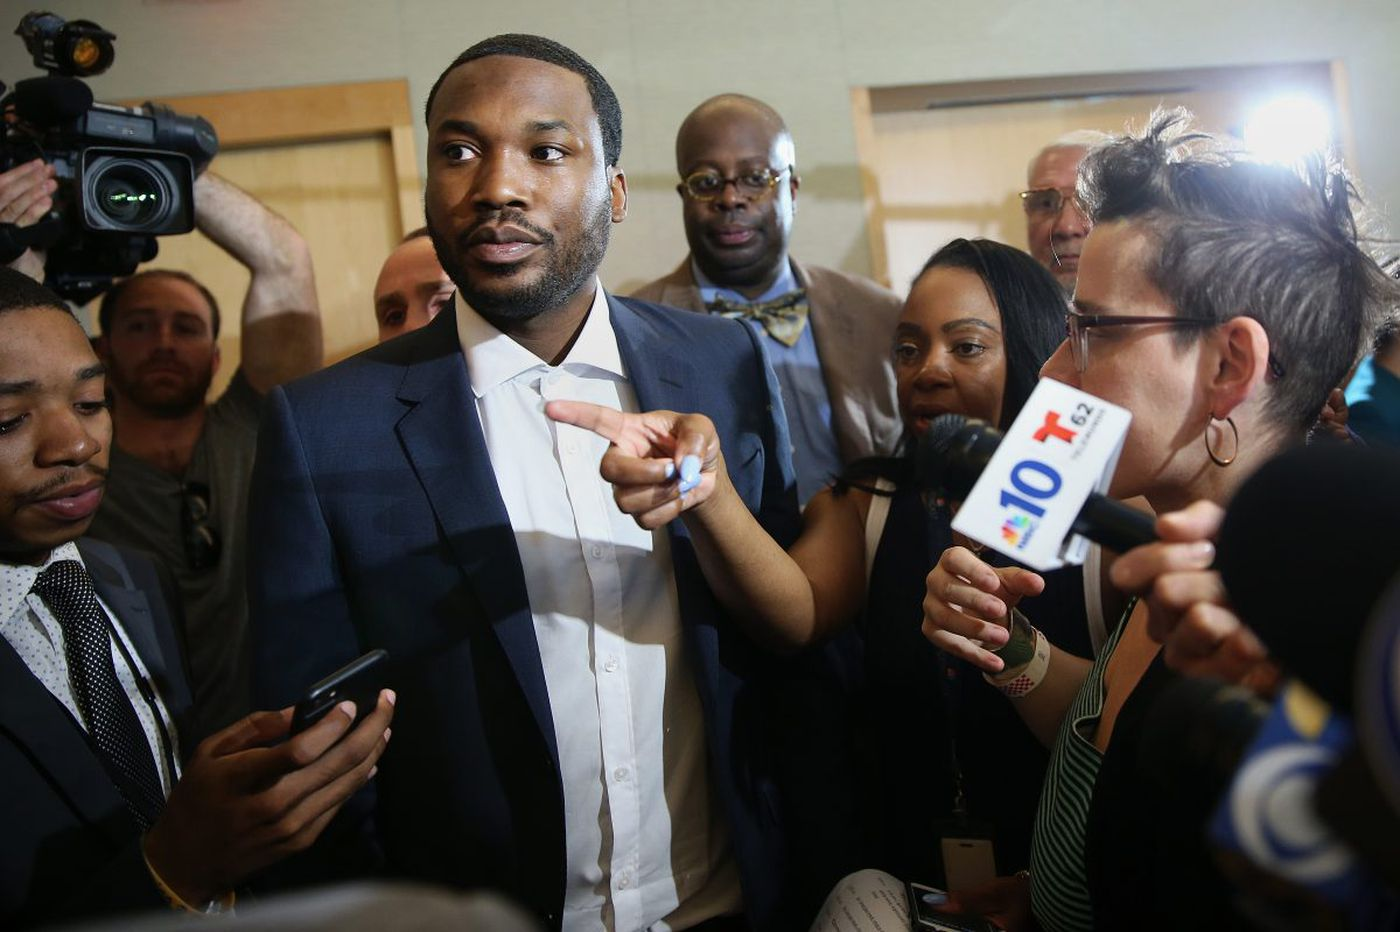 Meek Mill pushes for criminal-justice reform: 'I made a commitment to speak for the voiceless'